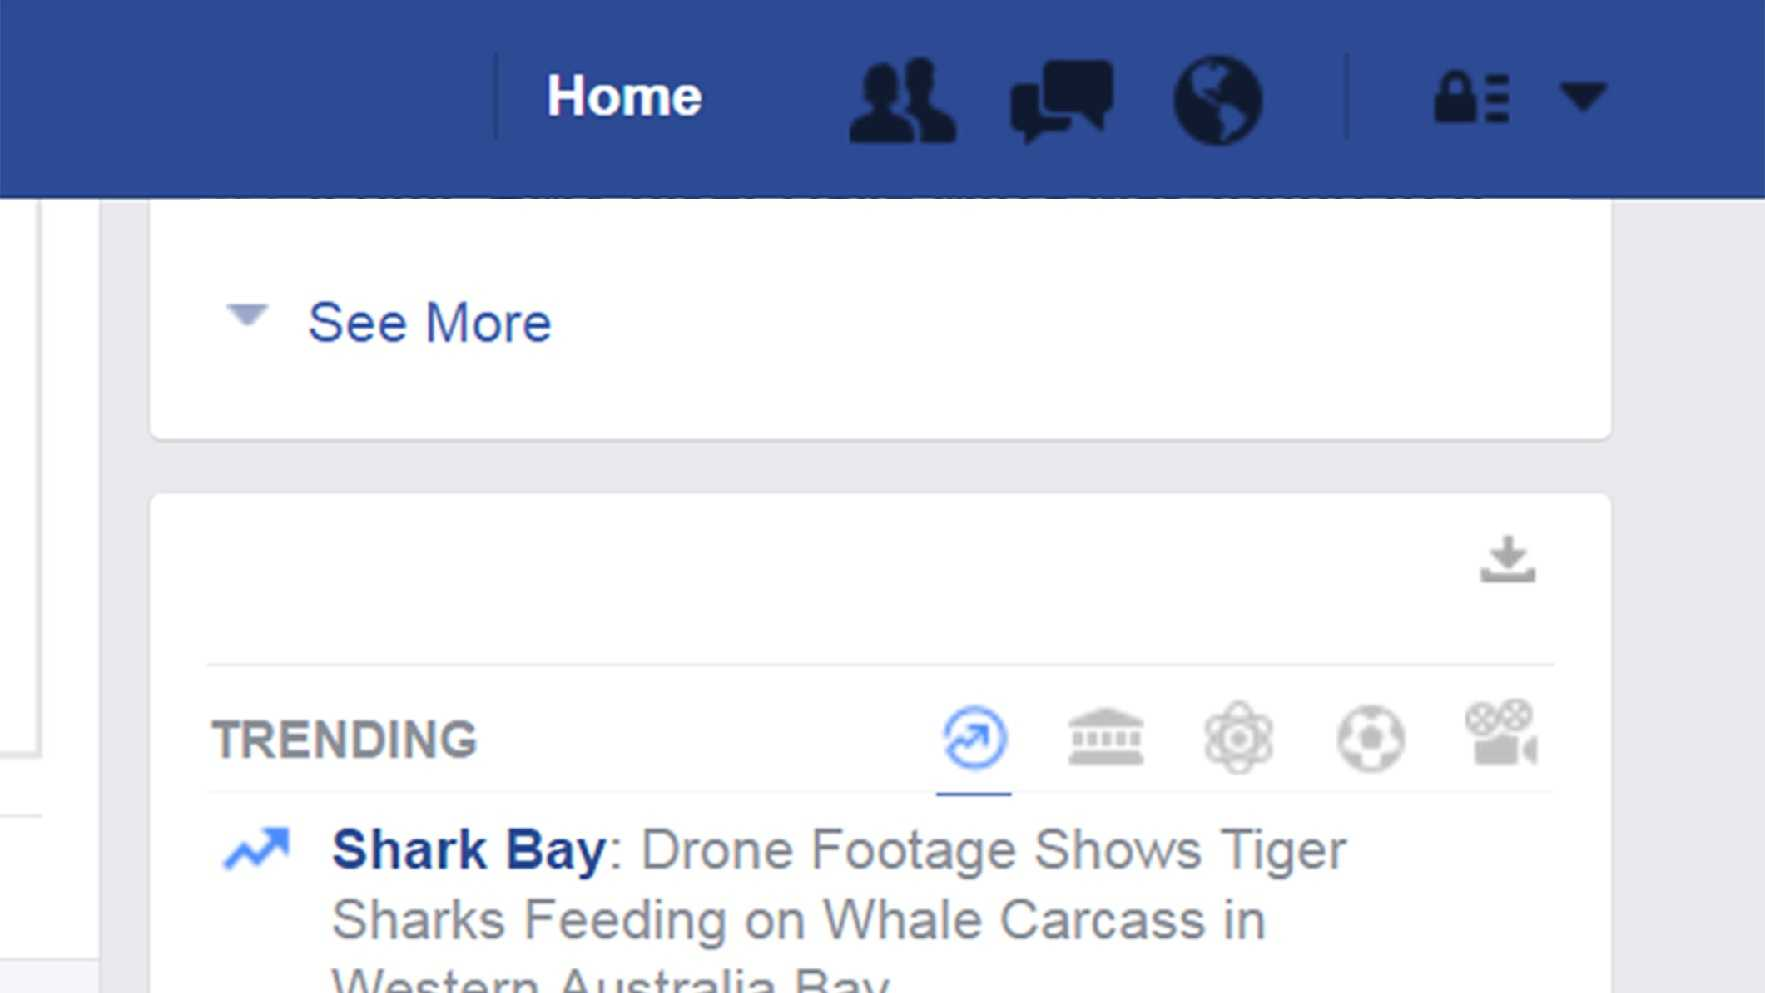 Trending on Facebook Tuesday